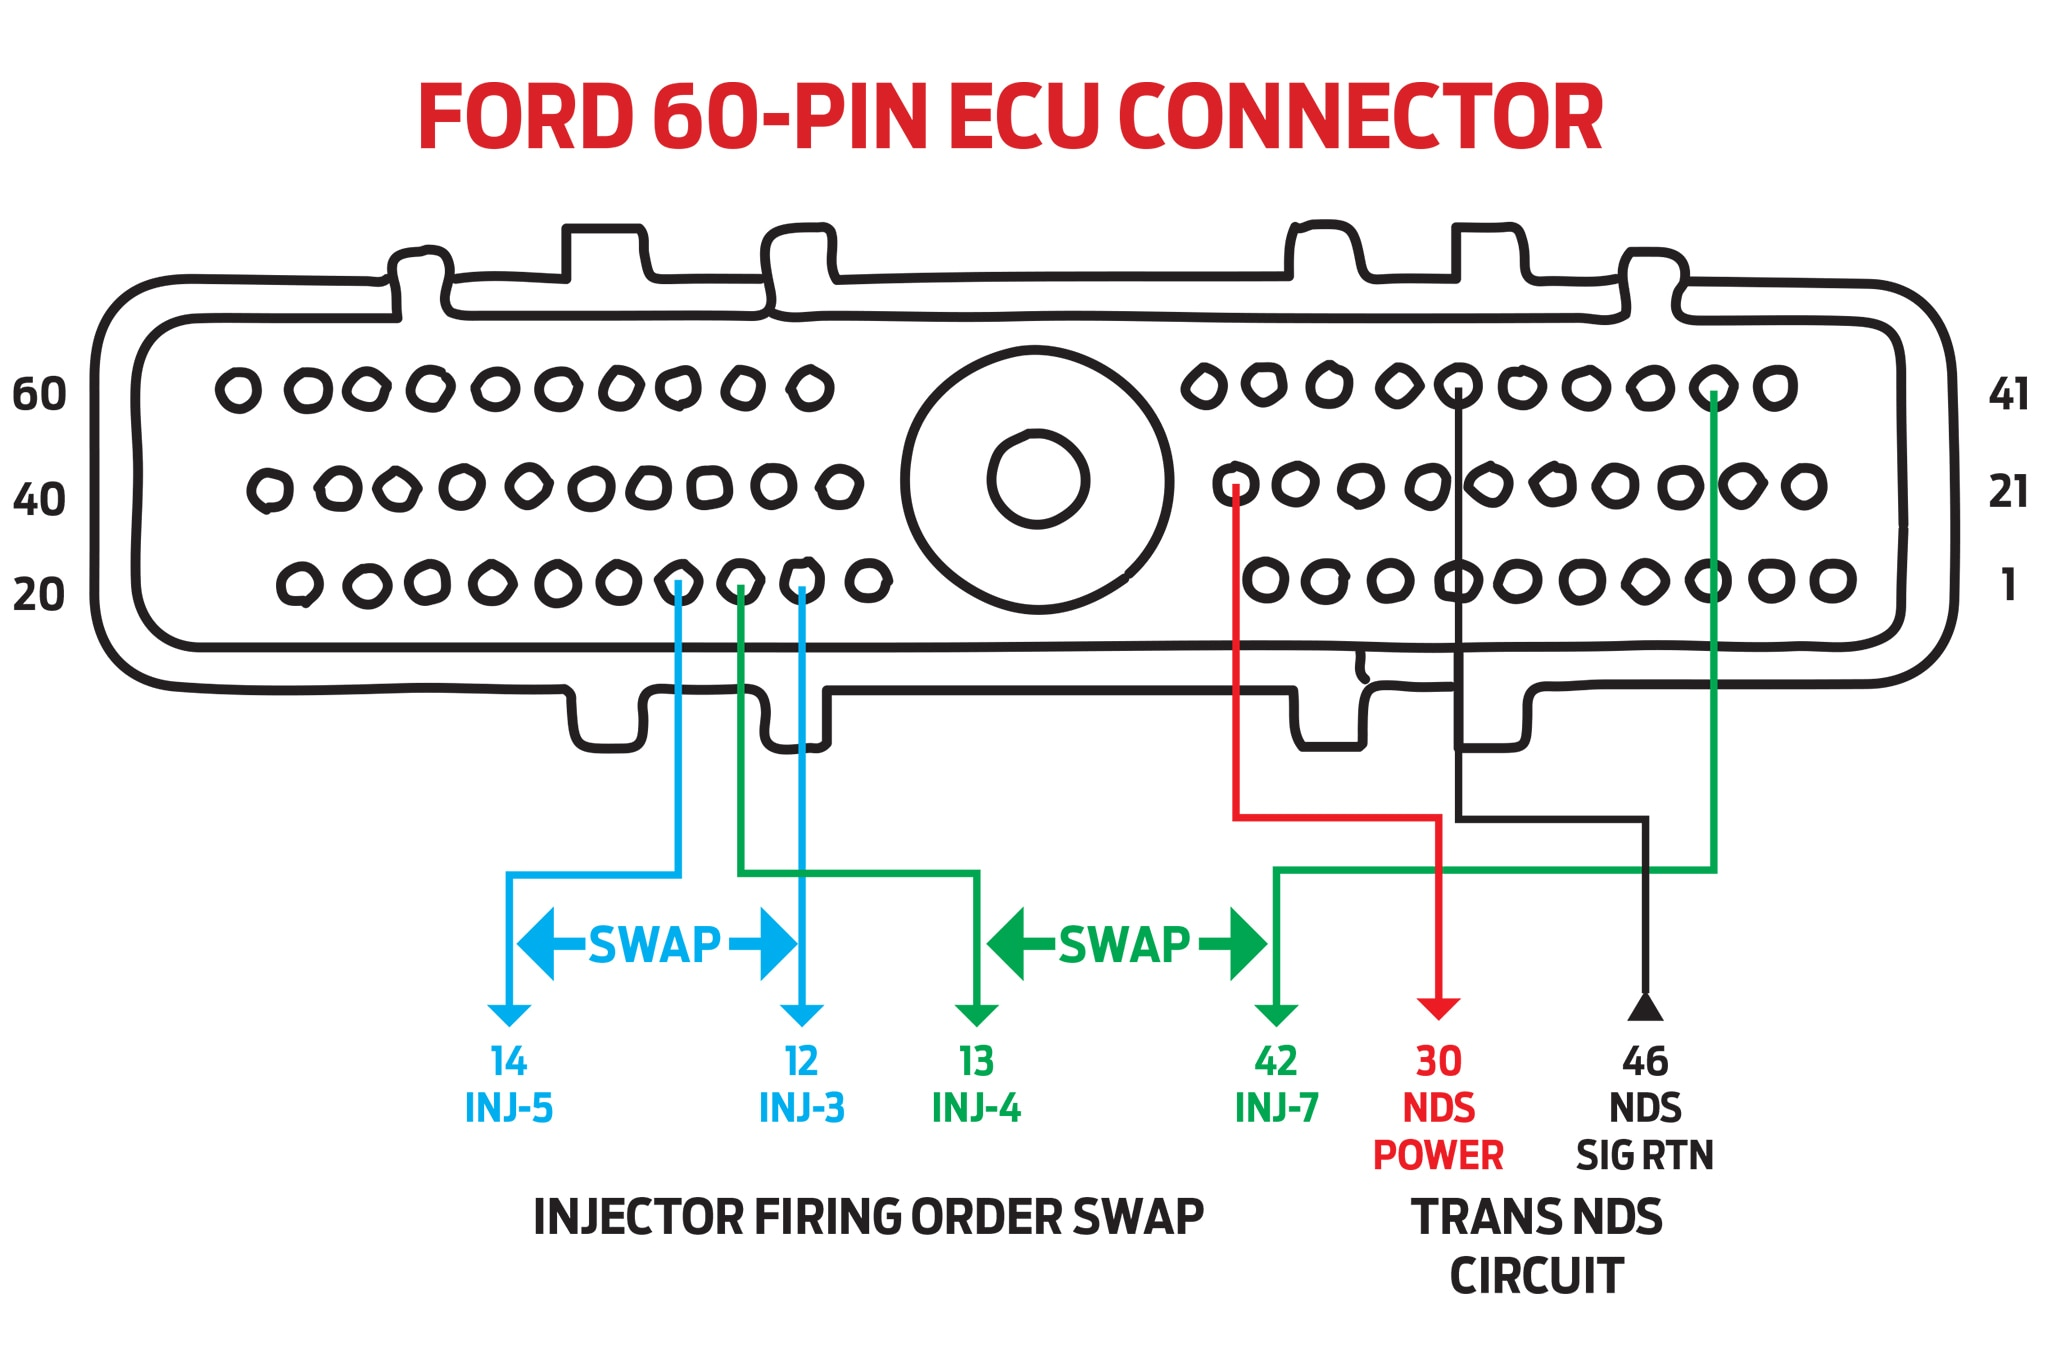 bosal towbar wiring diagram apac air conditioner diagrams hot rod to the rescue this late model 5 0l sfi system